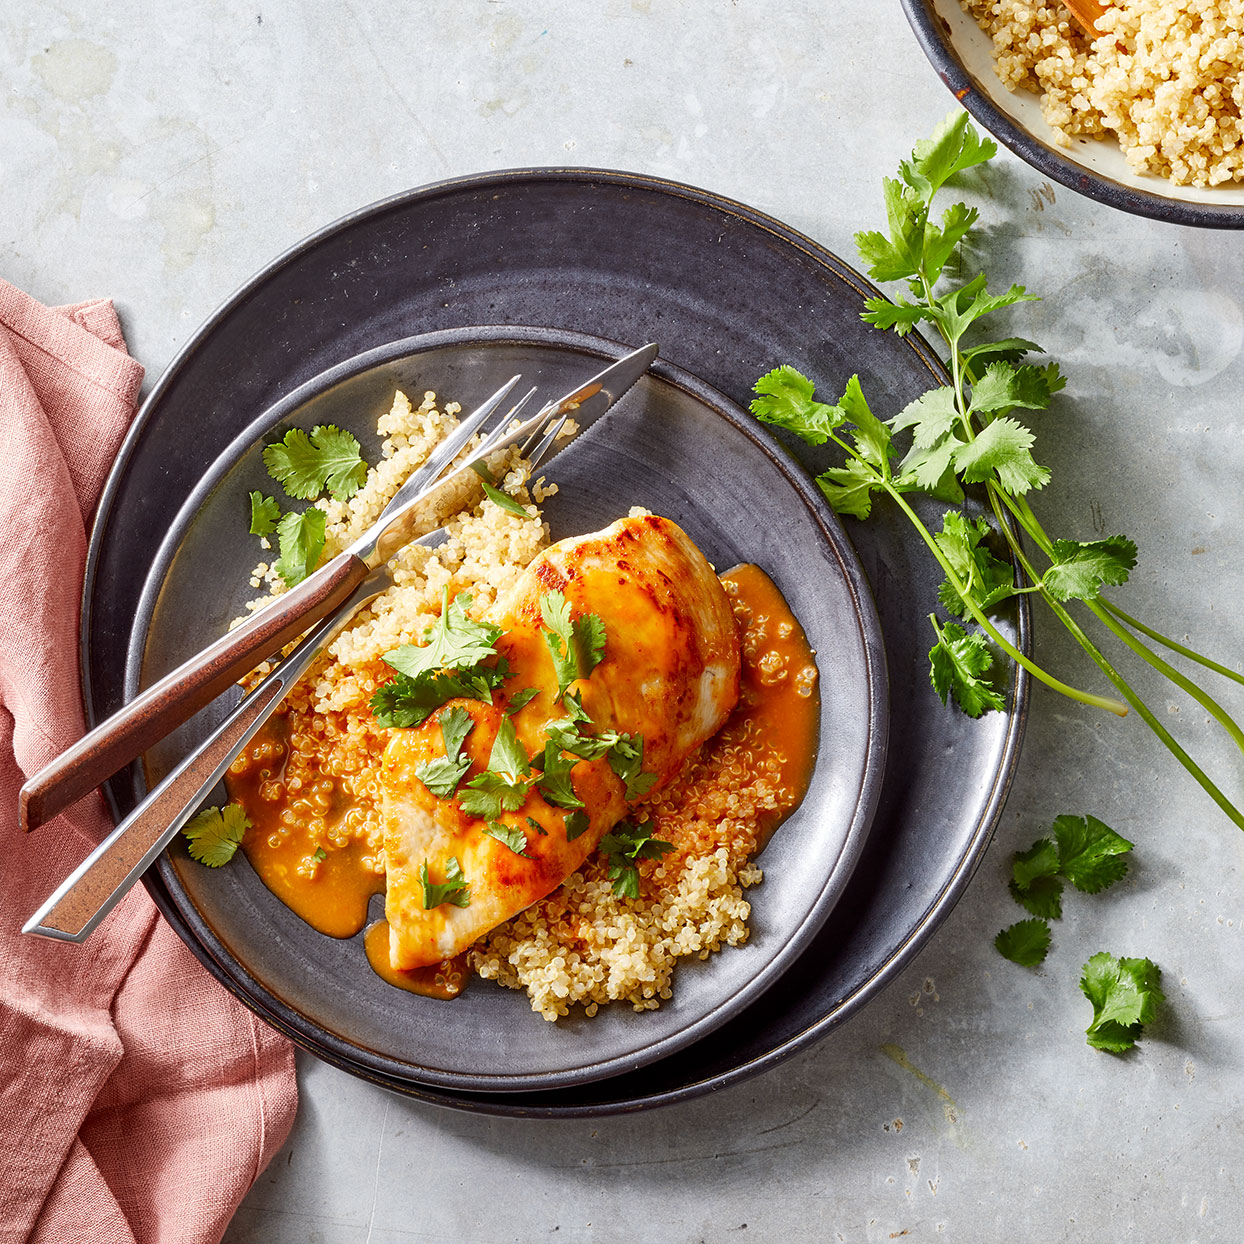 This easy chicken cutlet recipe will help you get a healthy meal on the table in just 20 minutes. Coconut milk's creamy consistency is perfect for making quick pan sauces--no need to add a thickener. Source: EatingWell Magazine, May 2020